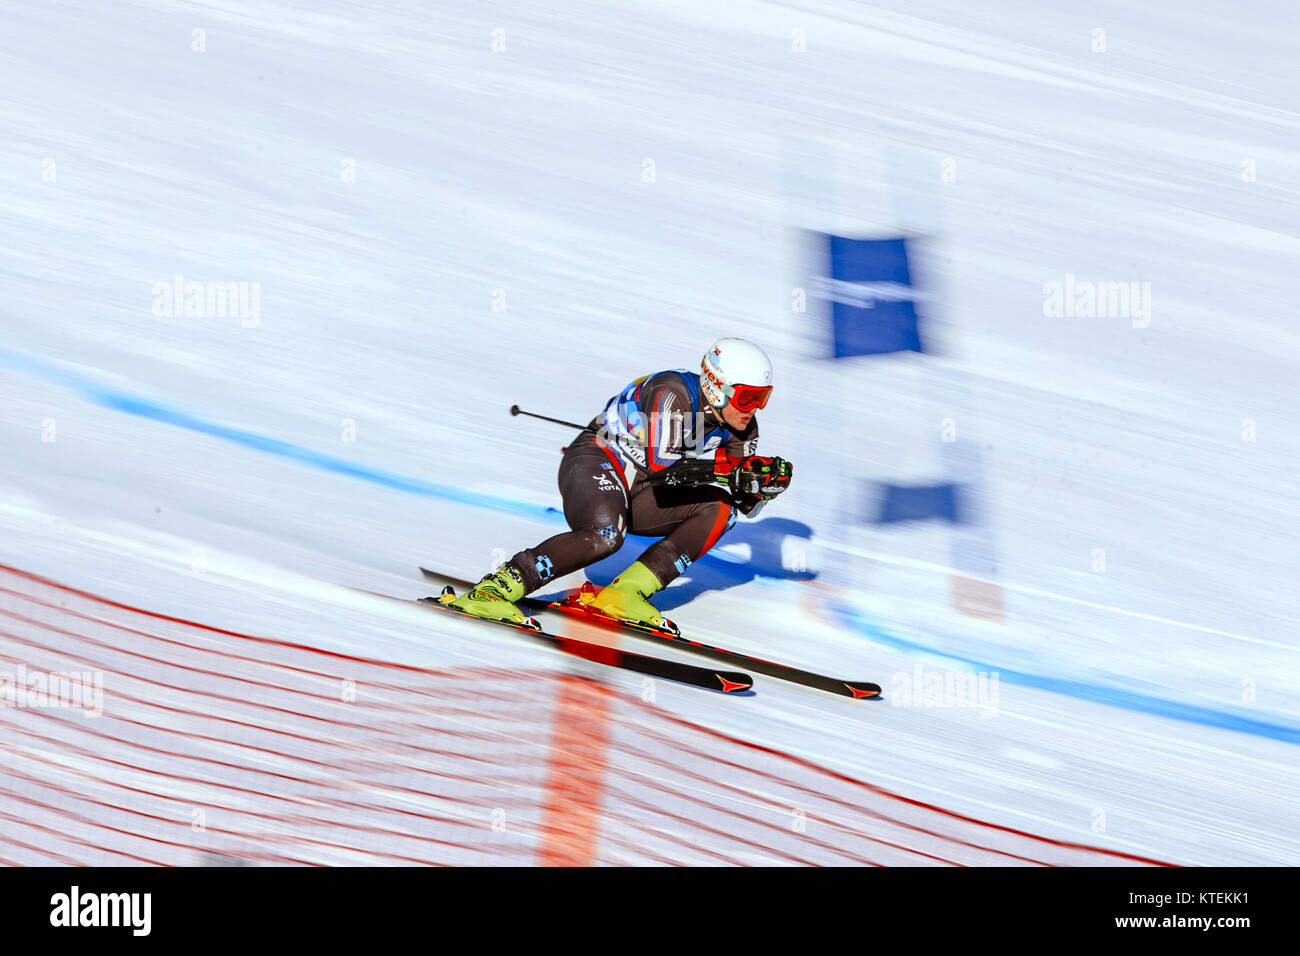 Magnitogorsk, Russia - December 19, 2017: Men super giant slalom during National Cup alpine skiing - Stock Image